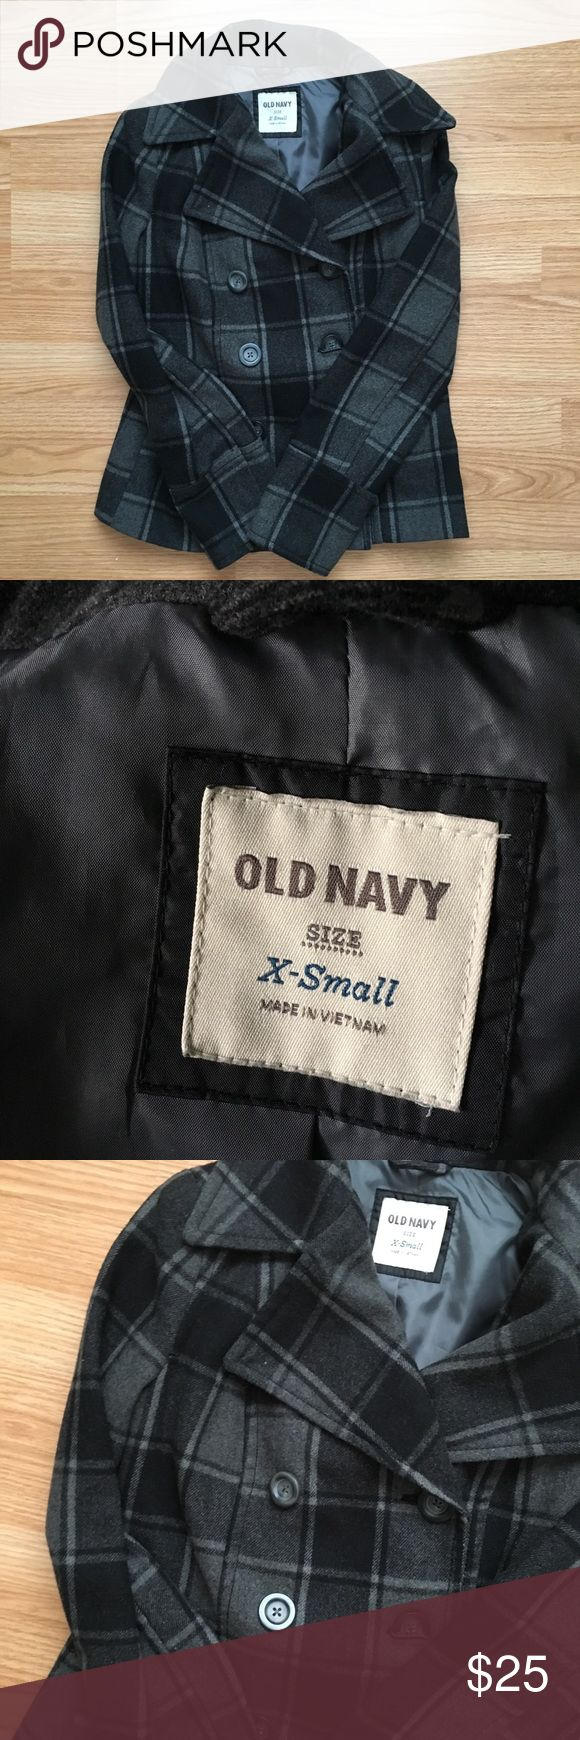 """Old Navy Pea Coat Pre-loved. Because of my geographic location, this was hardly used.  Shoulders : 14.5"""" Bust: 32"""" Length: 23"""" Old Navy Jackets & Coats Pea Coats"""